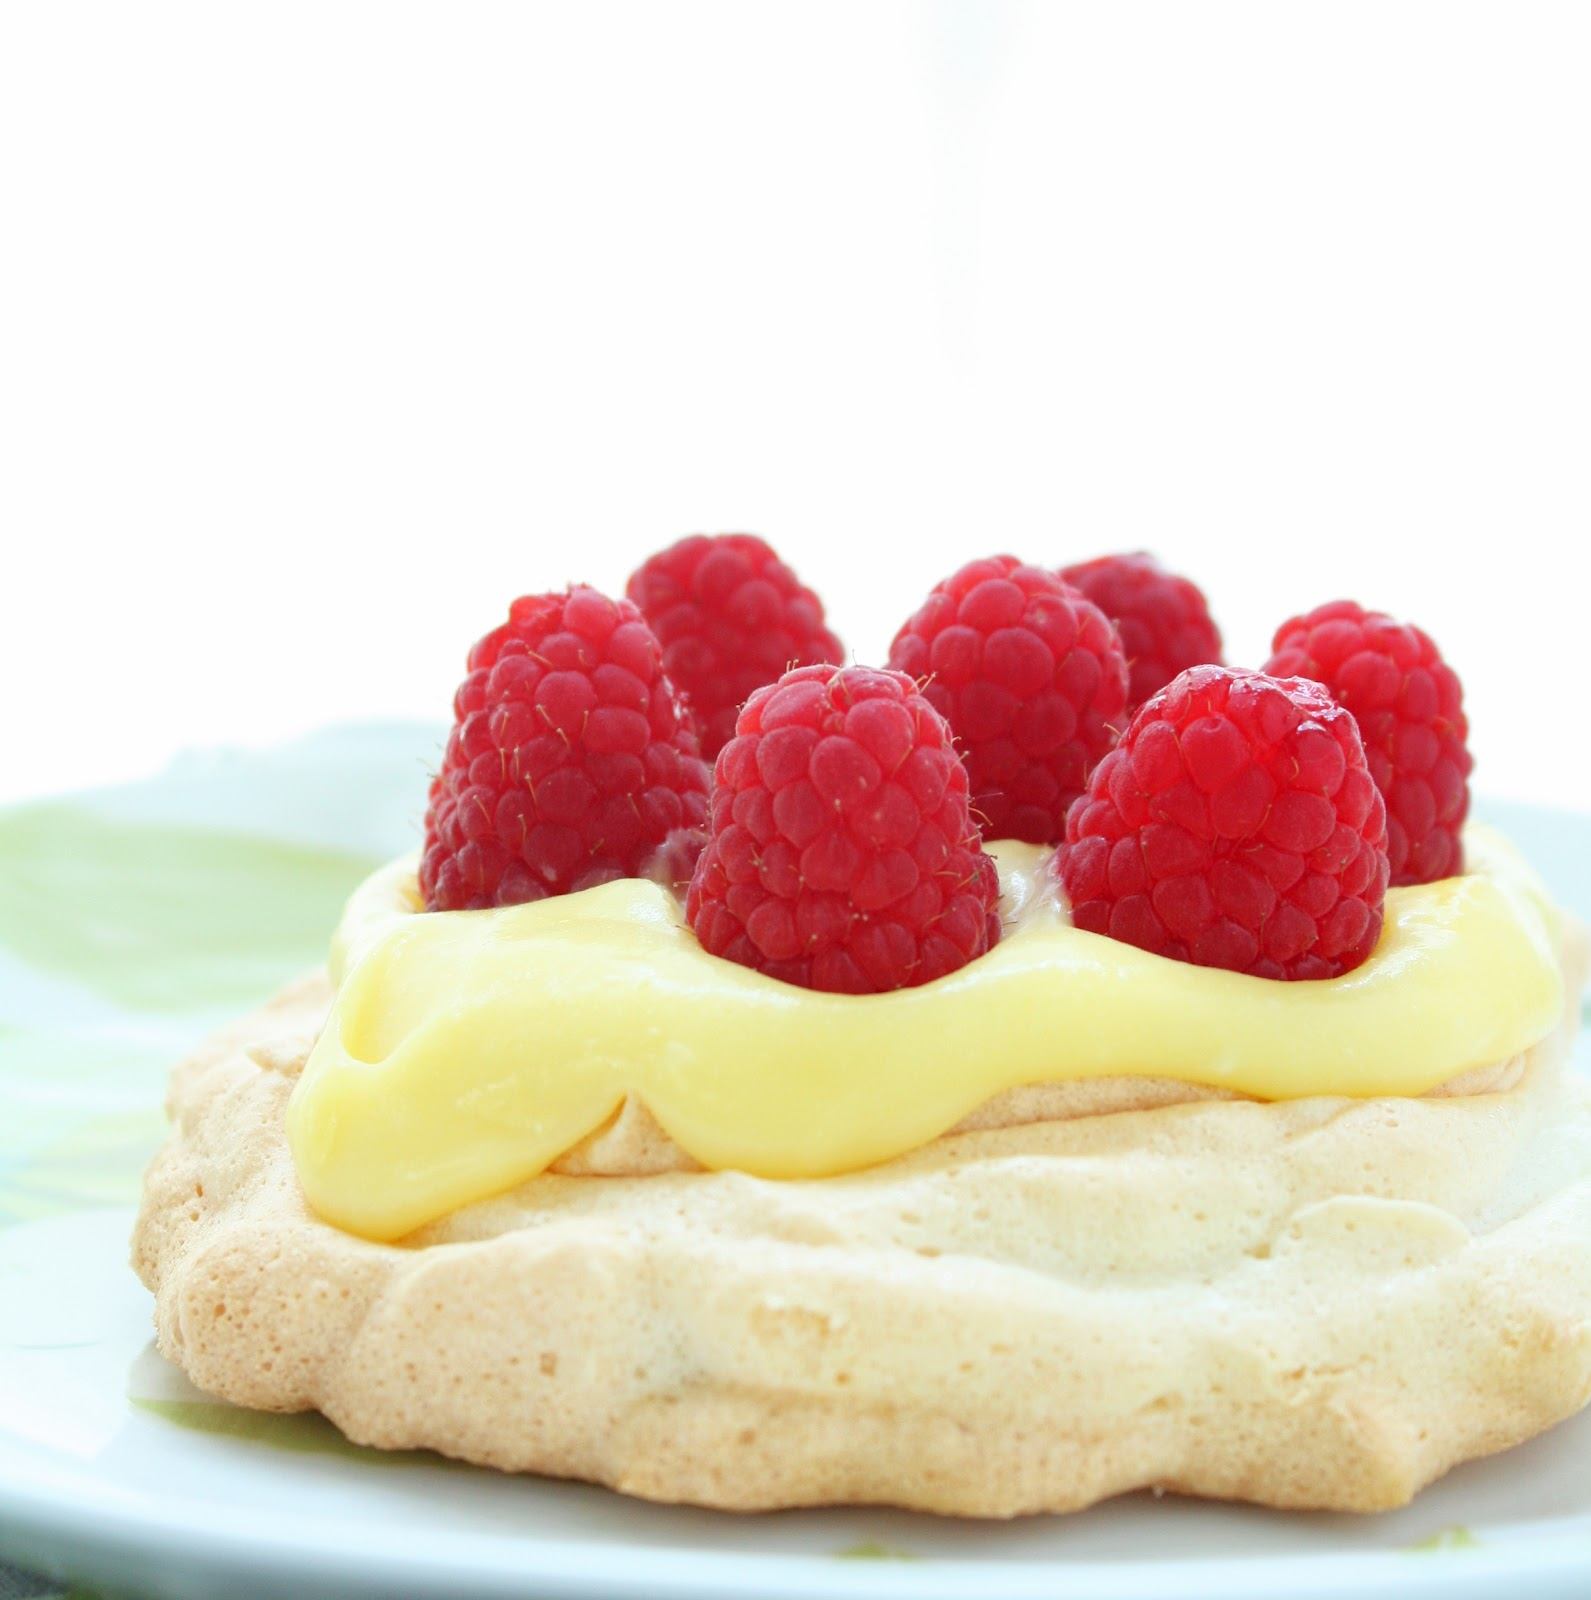 Sugar Free Berry & Lemon Curd Pavlovas | I Breathe I'm Hungry